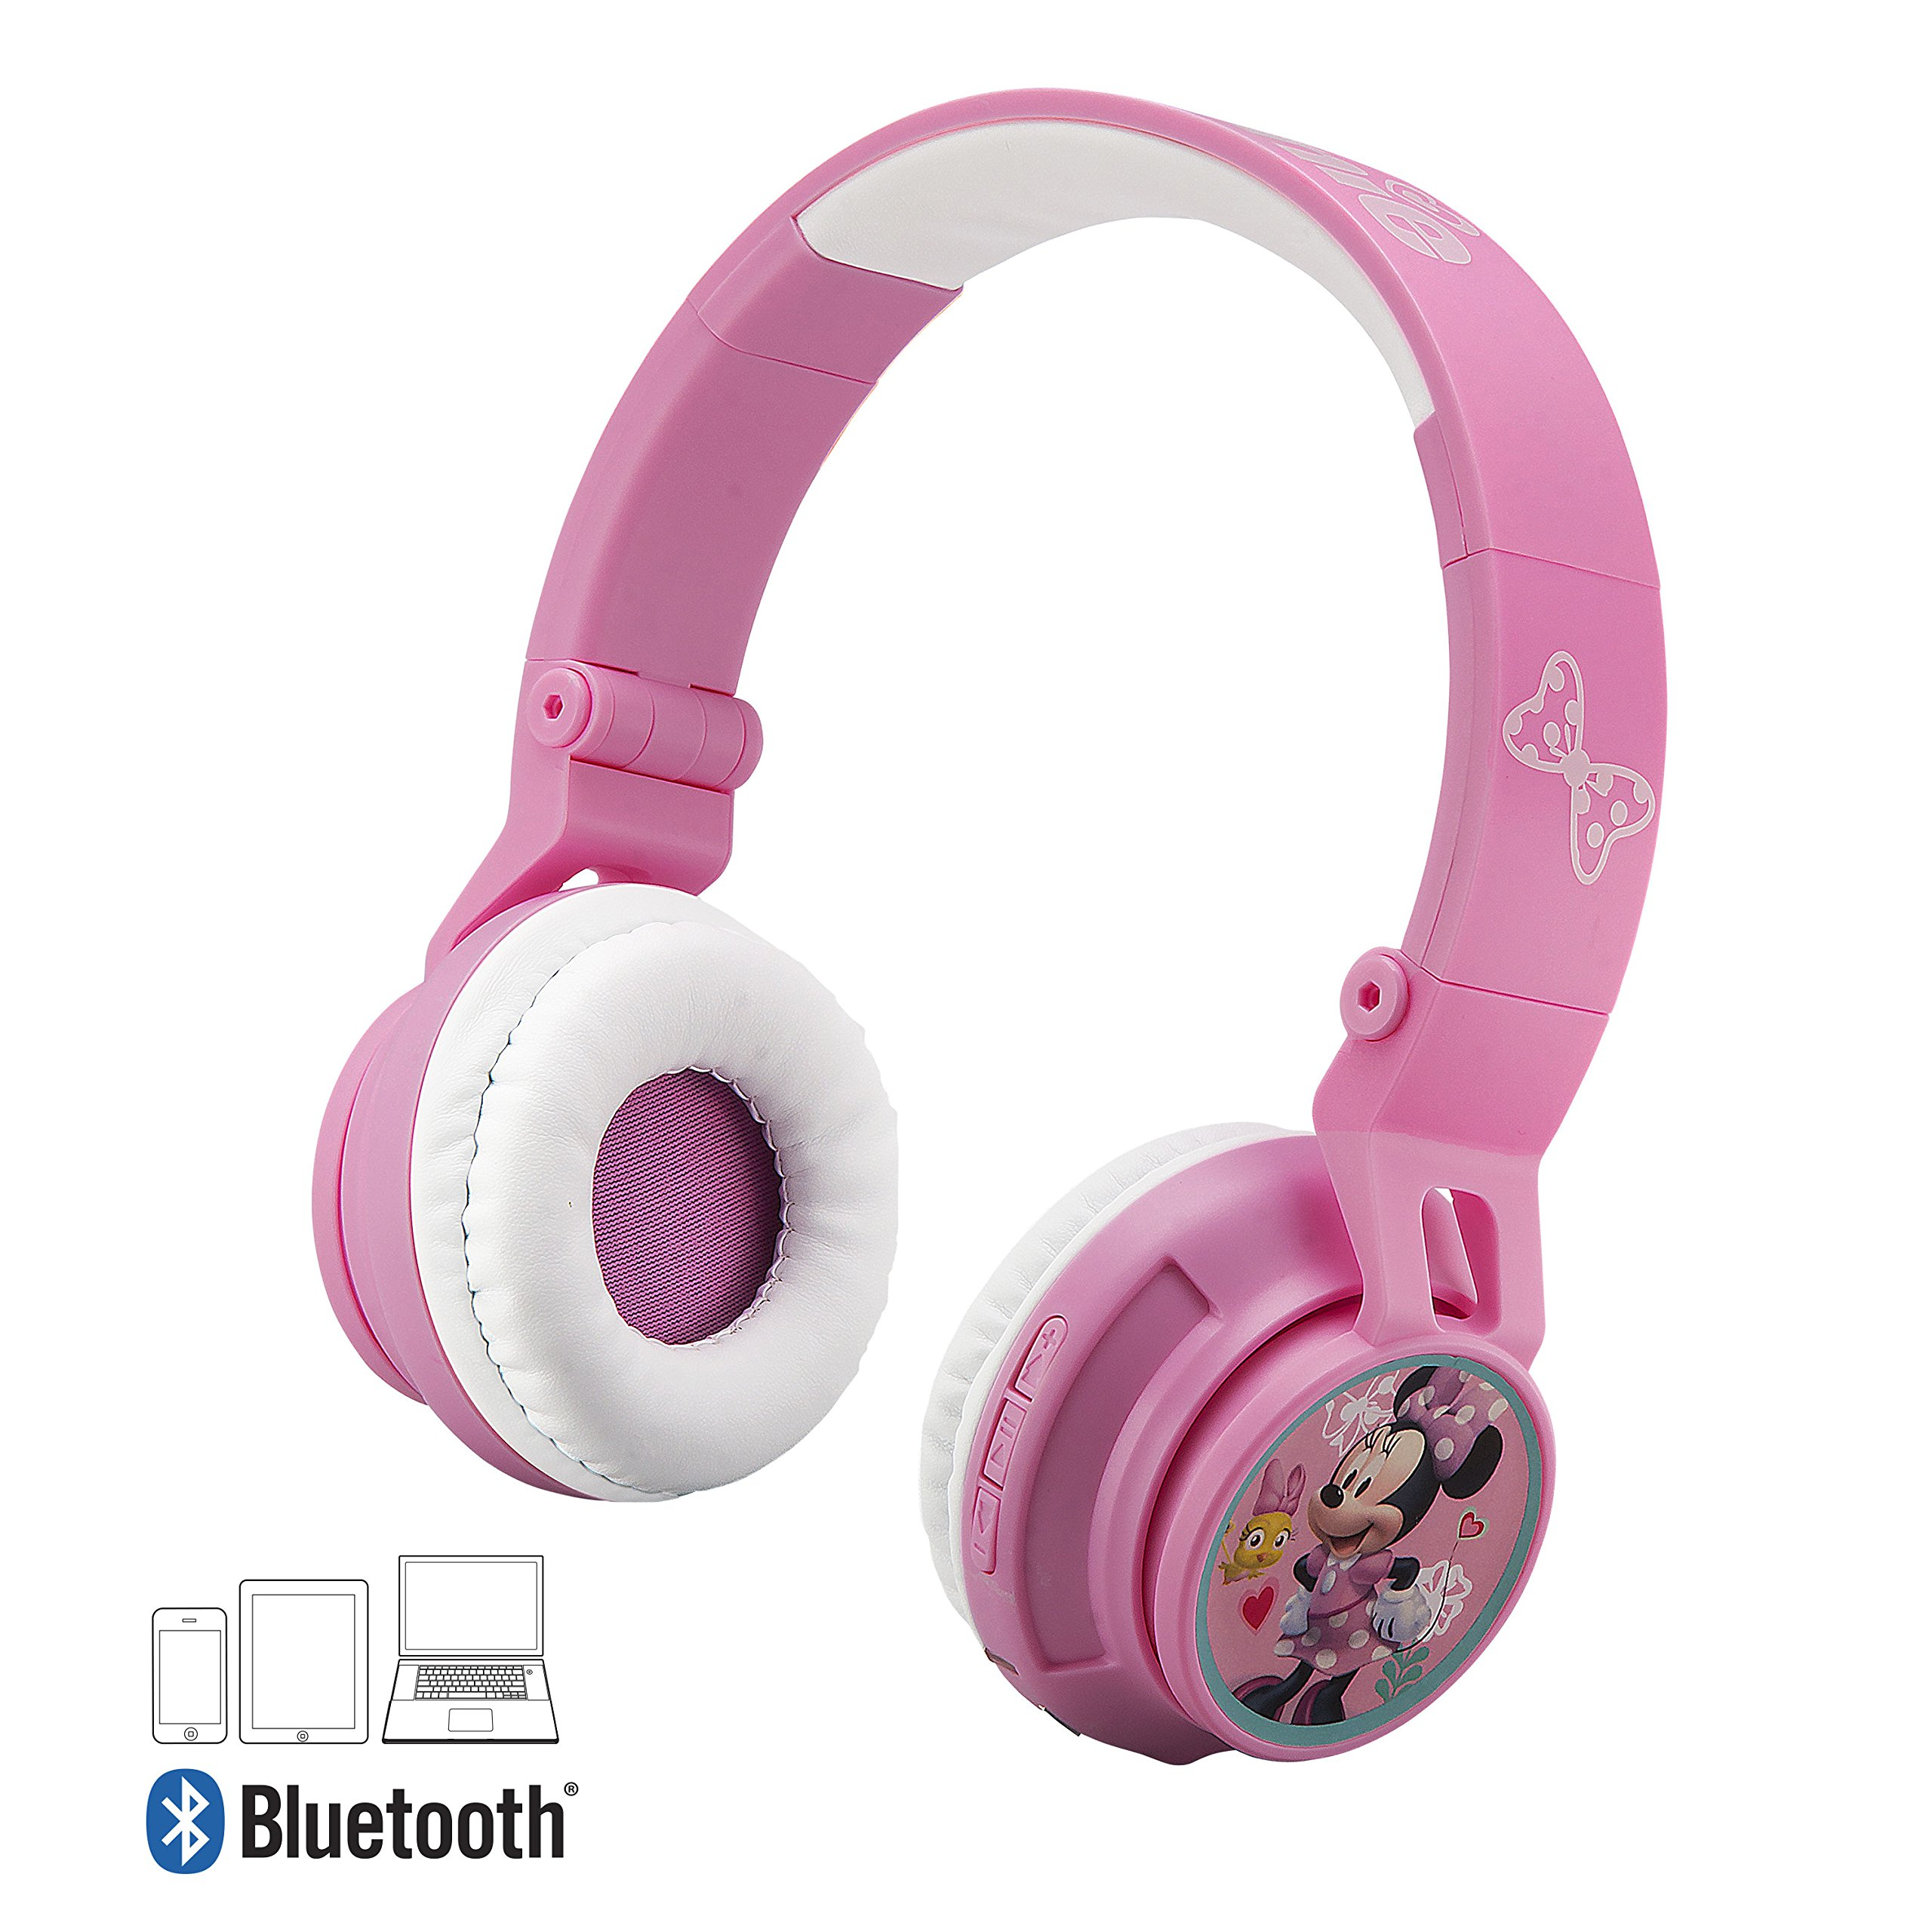 Minnie Mouse Bluetooth Headphones for Kids Wireless Rechargeable Kid Friendly Sound (Minnie Mouse)